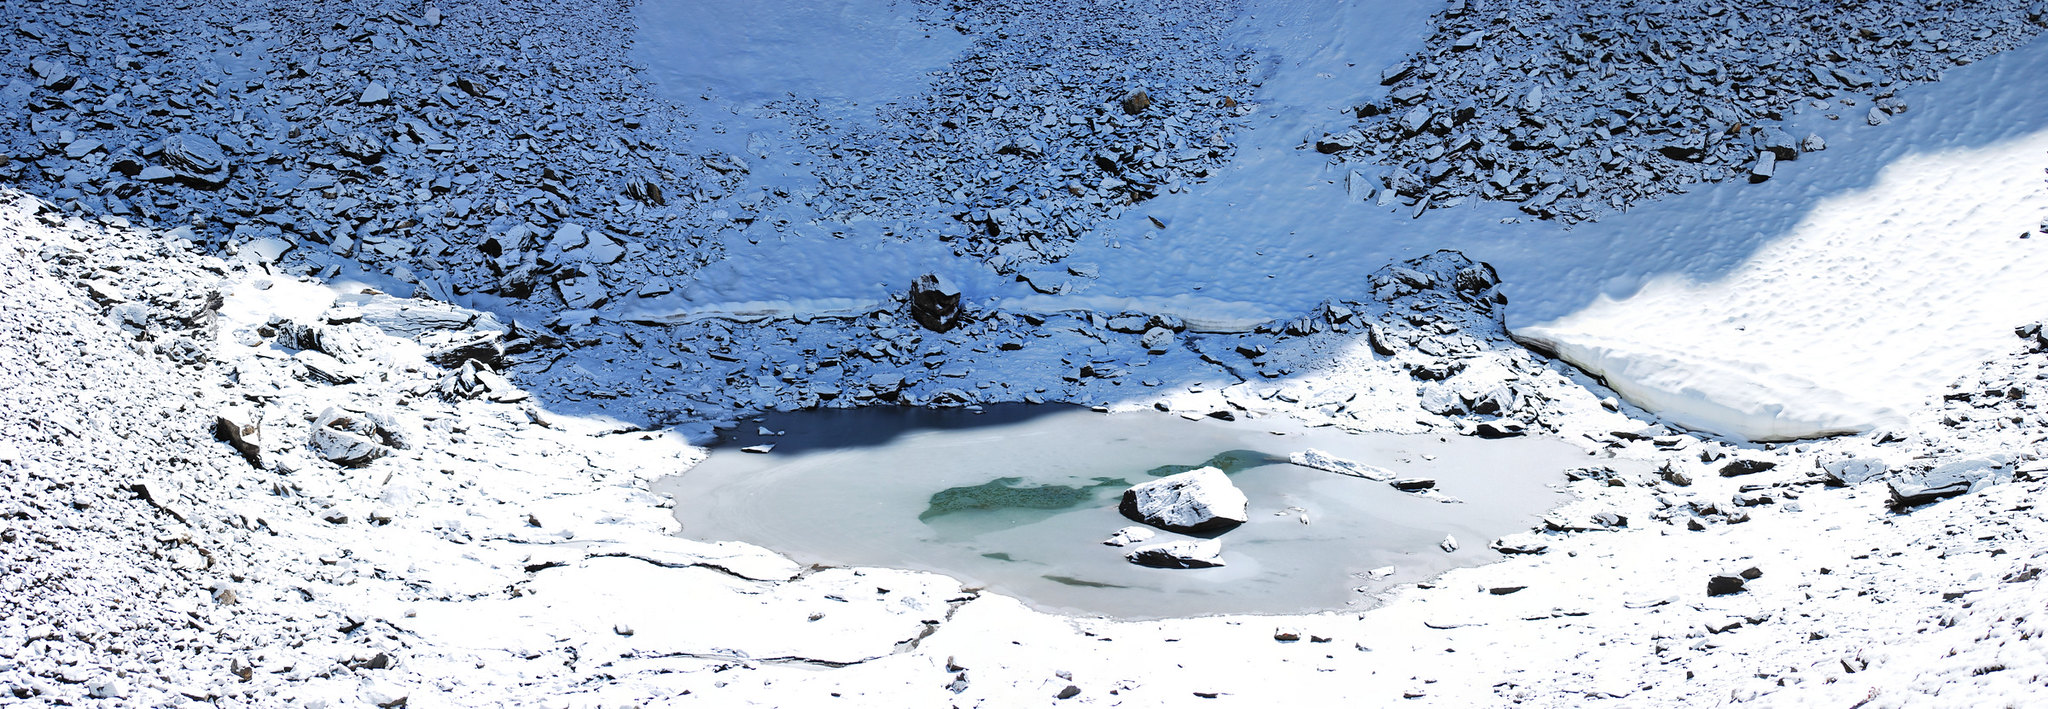 Roopkund Lake in the Himalayas.